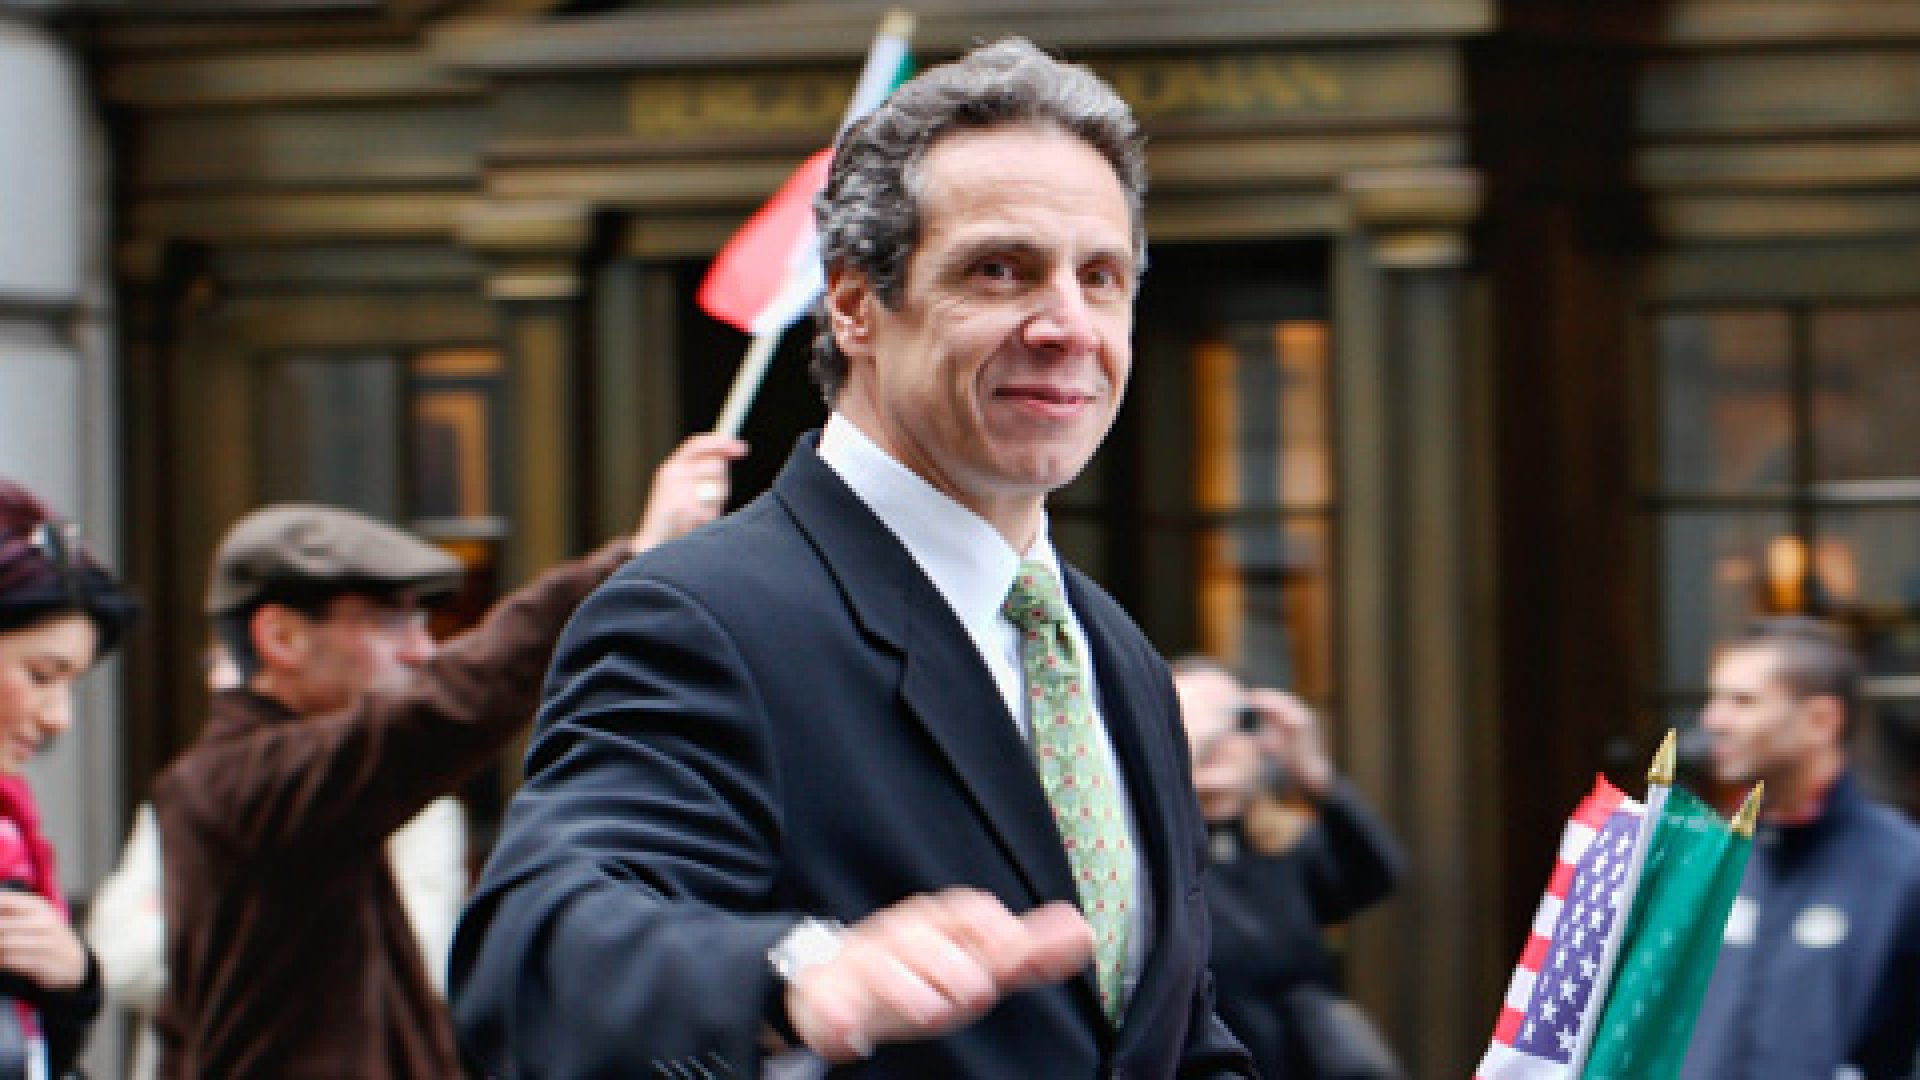 Tech Entrepreneurs to Cuomo: Change Campaign Finance